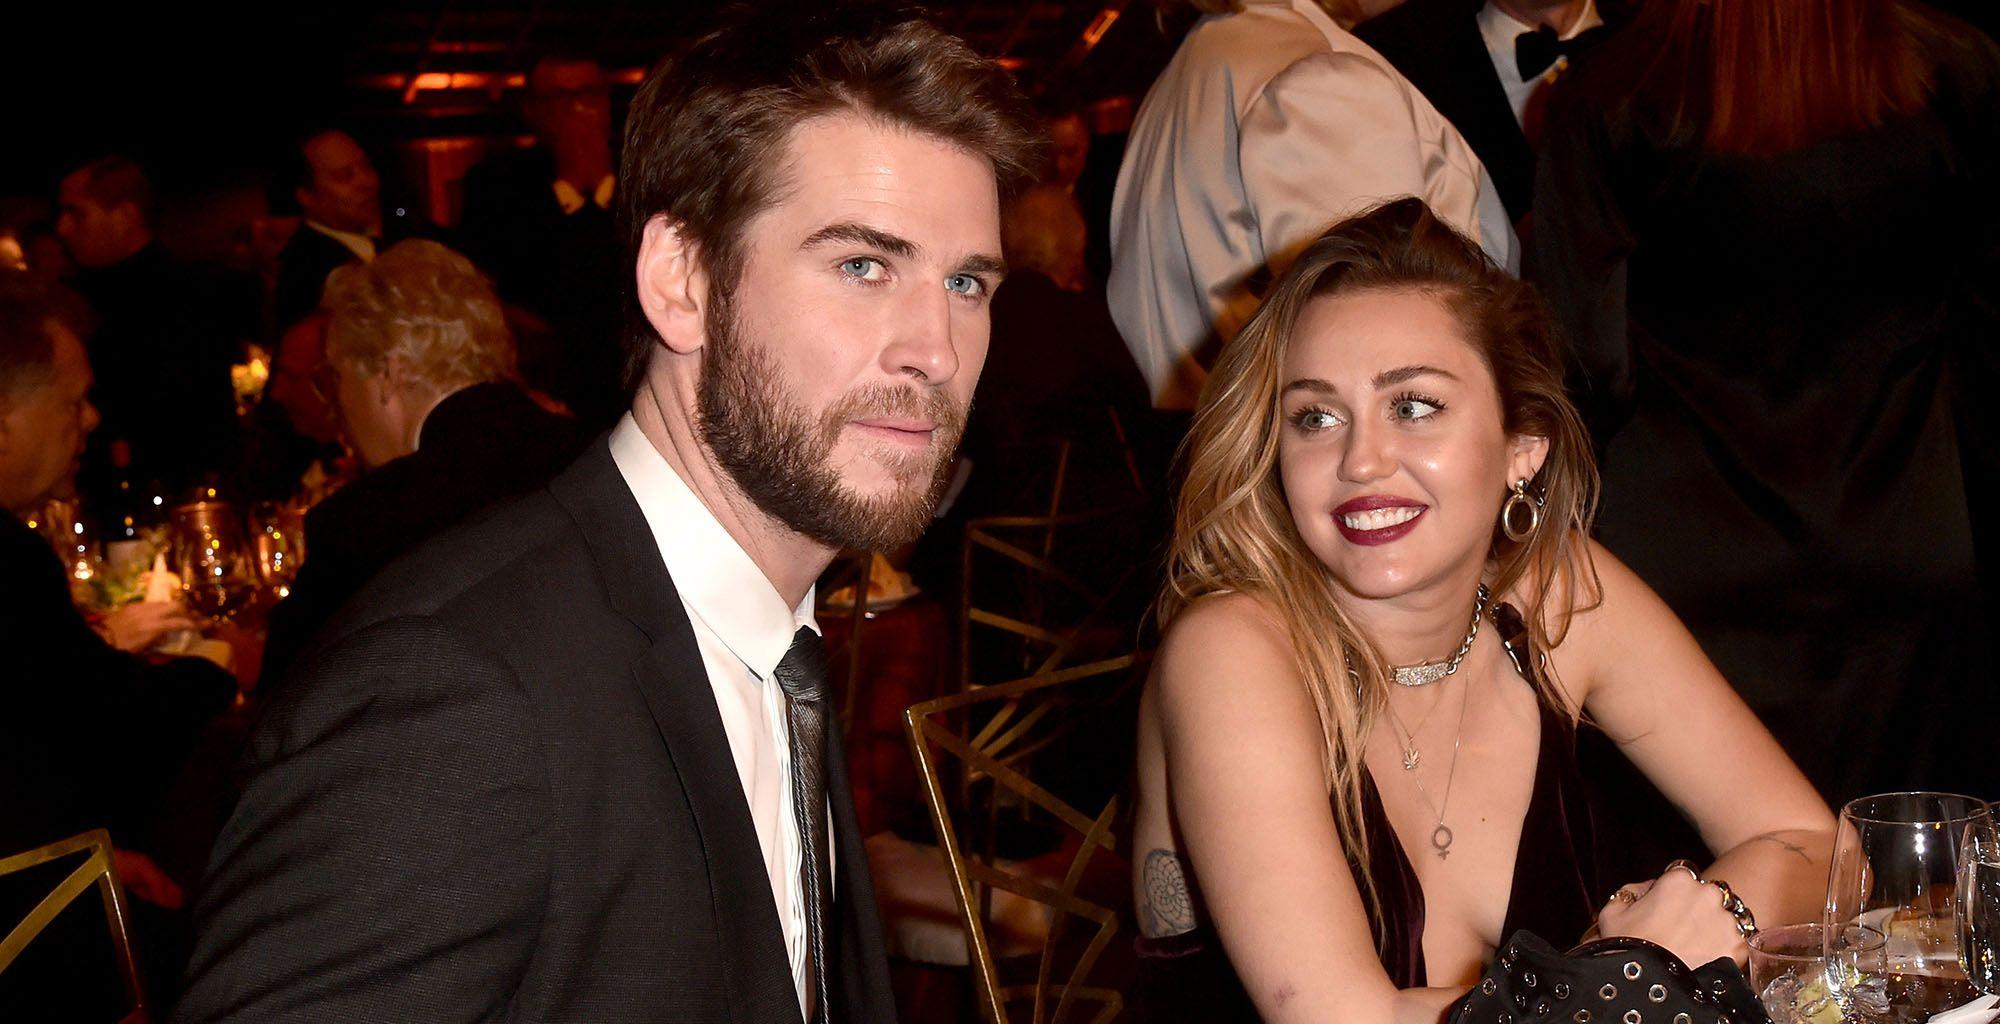 Liam Hemsworth Finally Gets Why His Family Wasn't A Fan Of His Romance With Miley Cyrus, Source Says!